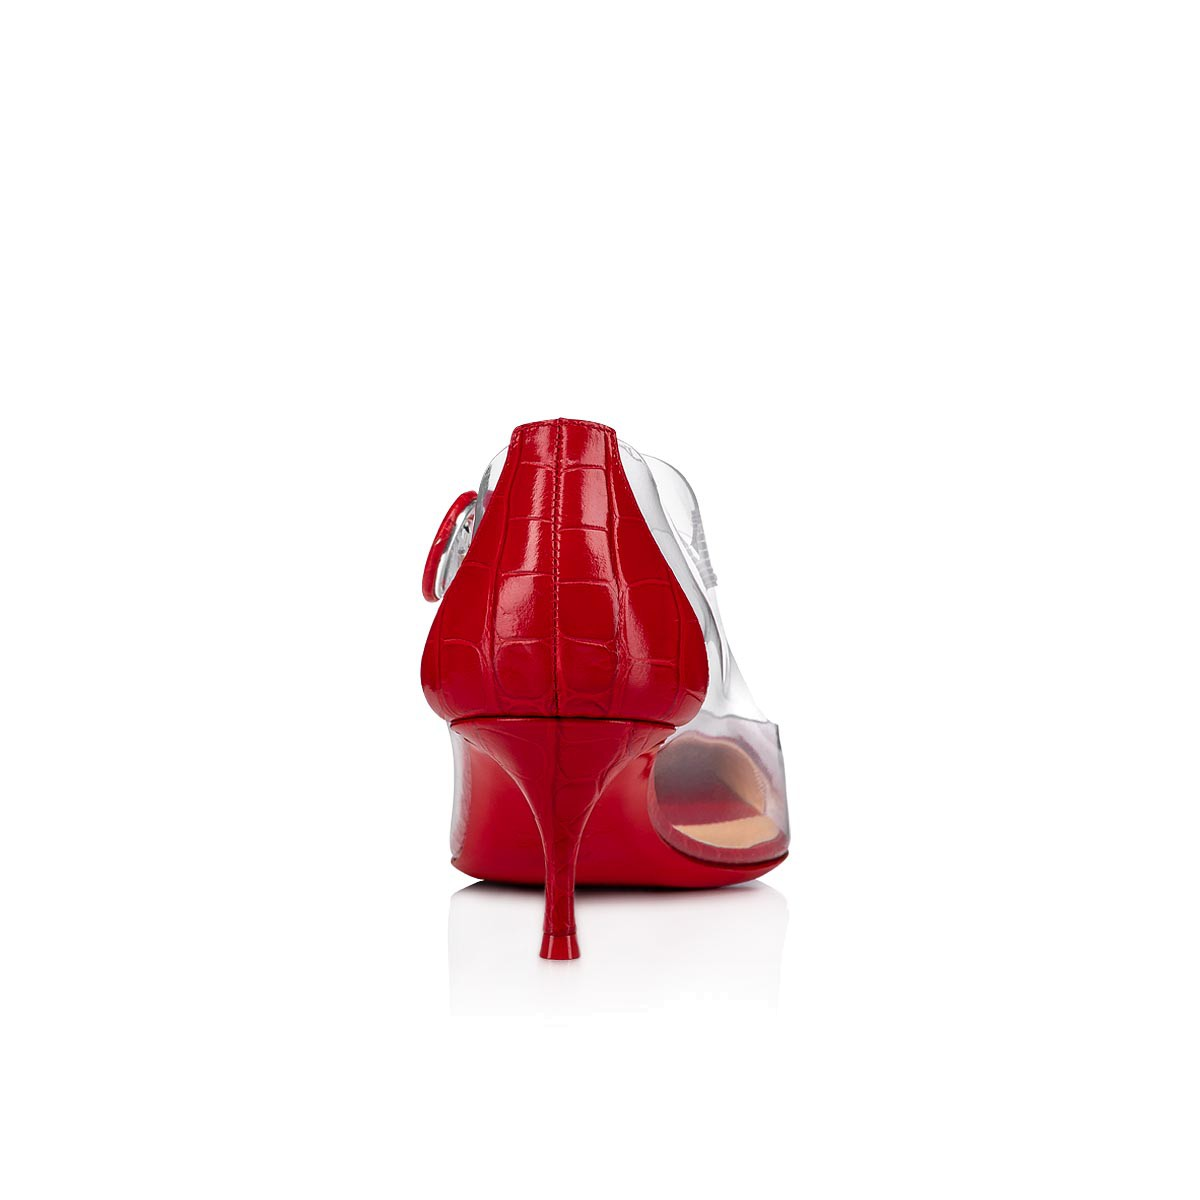 Shoes - So Clear - Christian Louboutin